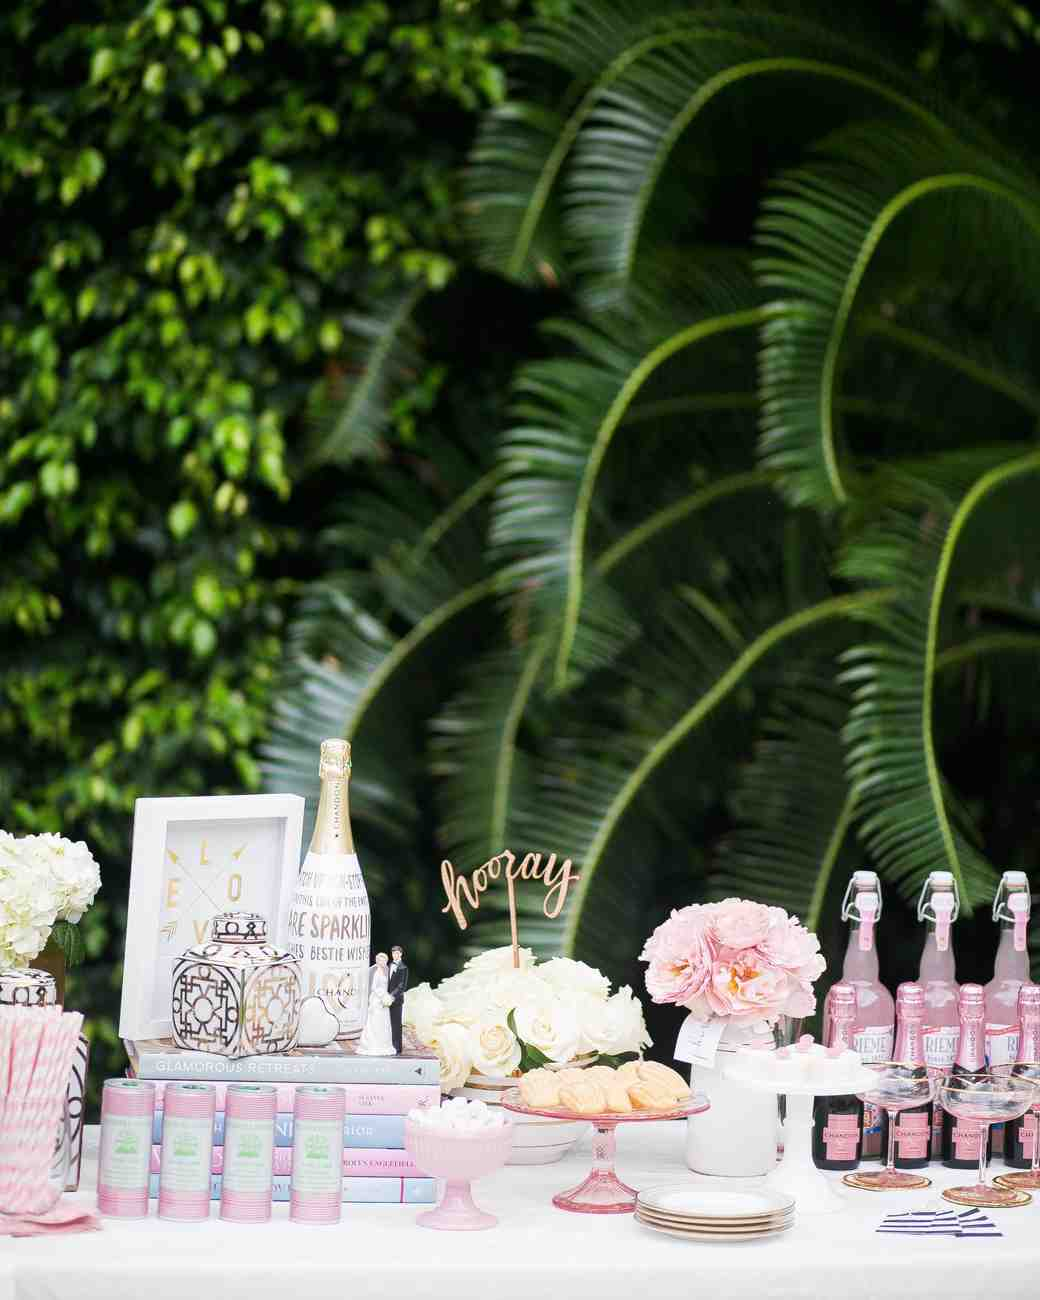 a1341afab83 The Essential Elements of a Bridal Shower Dessert Bar